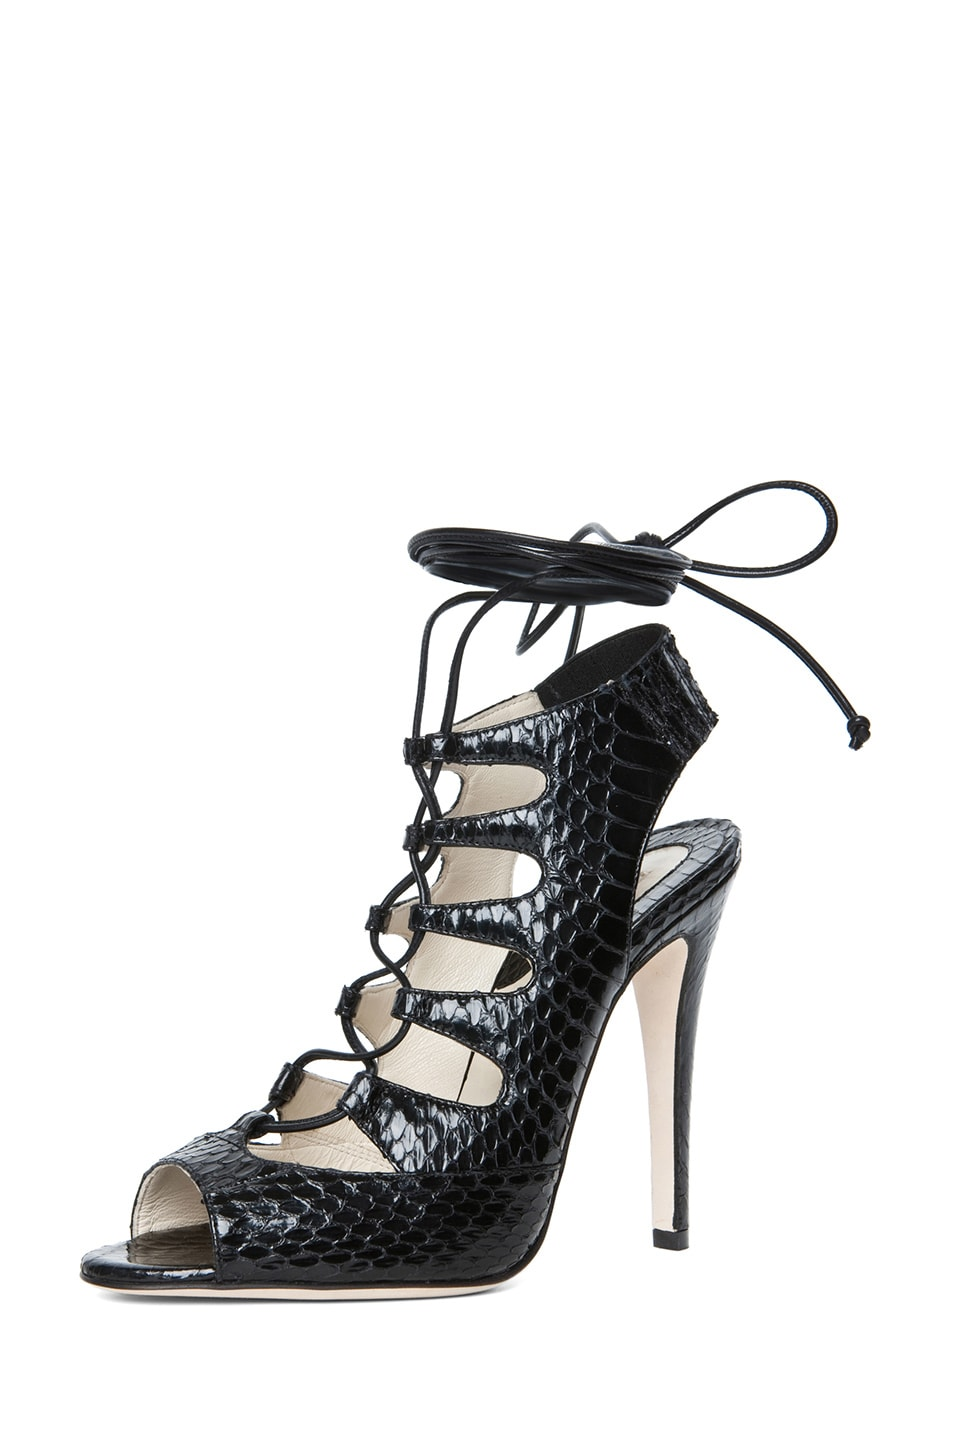 Image 2 of Brian Atwood Tie Me Up Snakeskin Lace Up Sandal in Black Snake